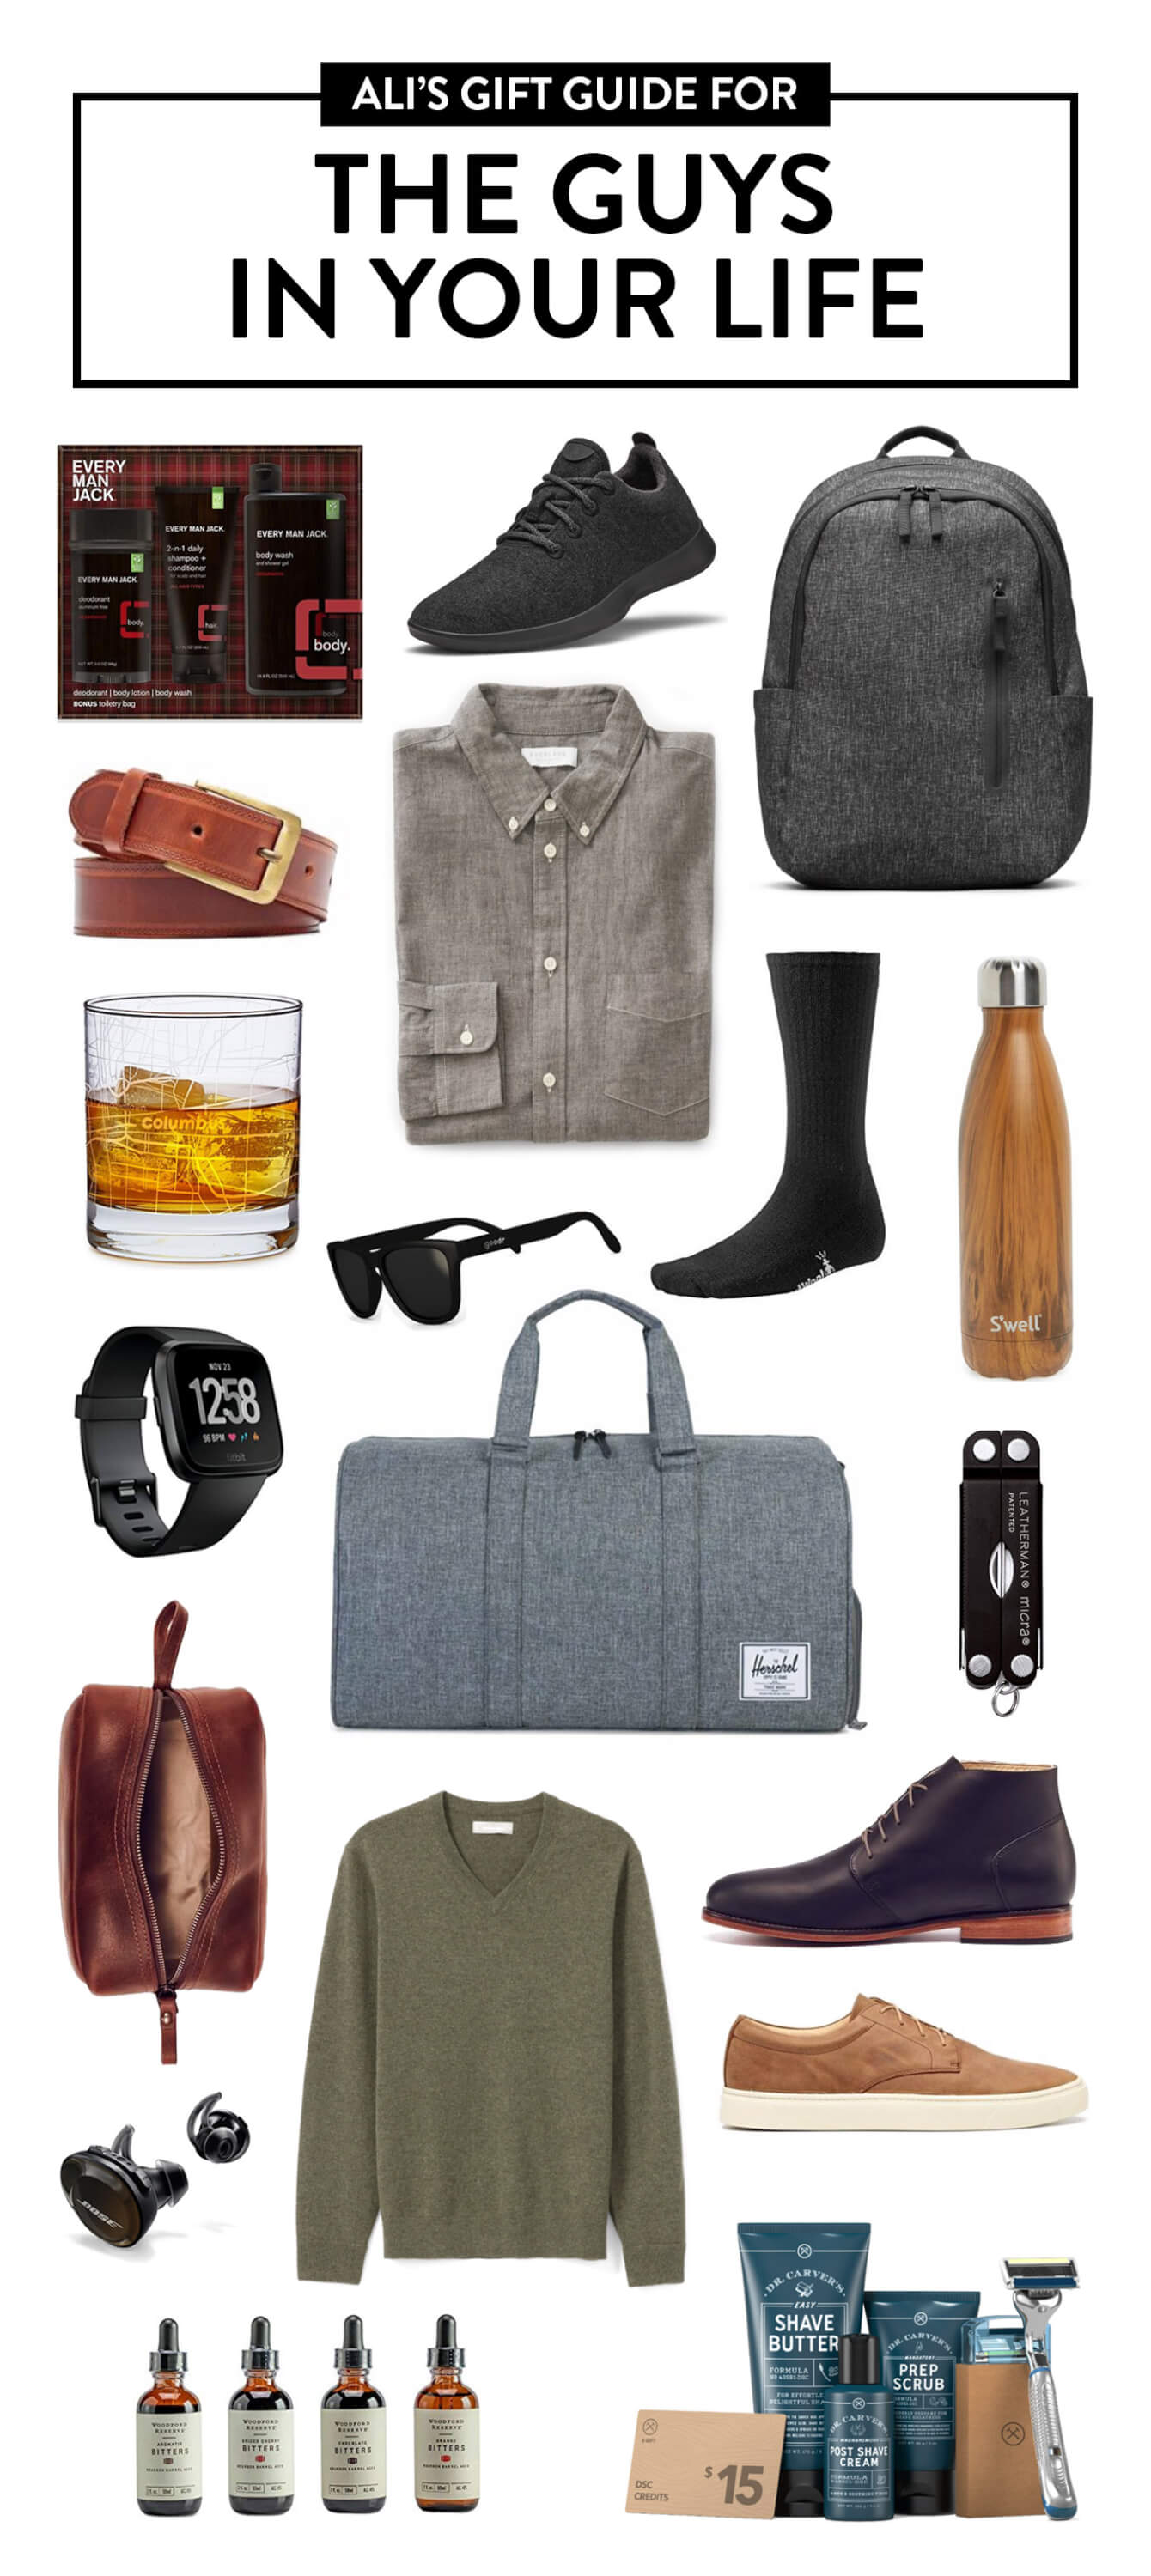 2018 Gimme Some Oven Holiday Gift Guide: The Guys In Your Life